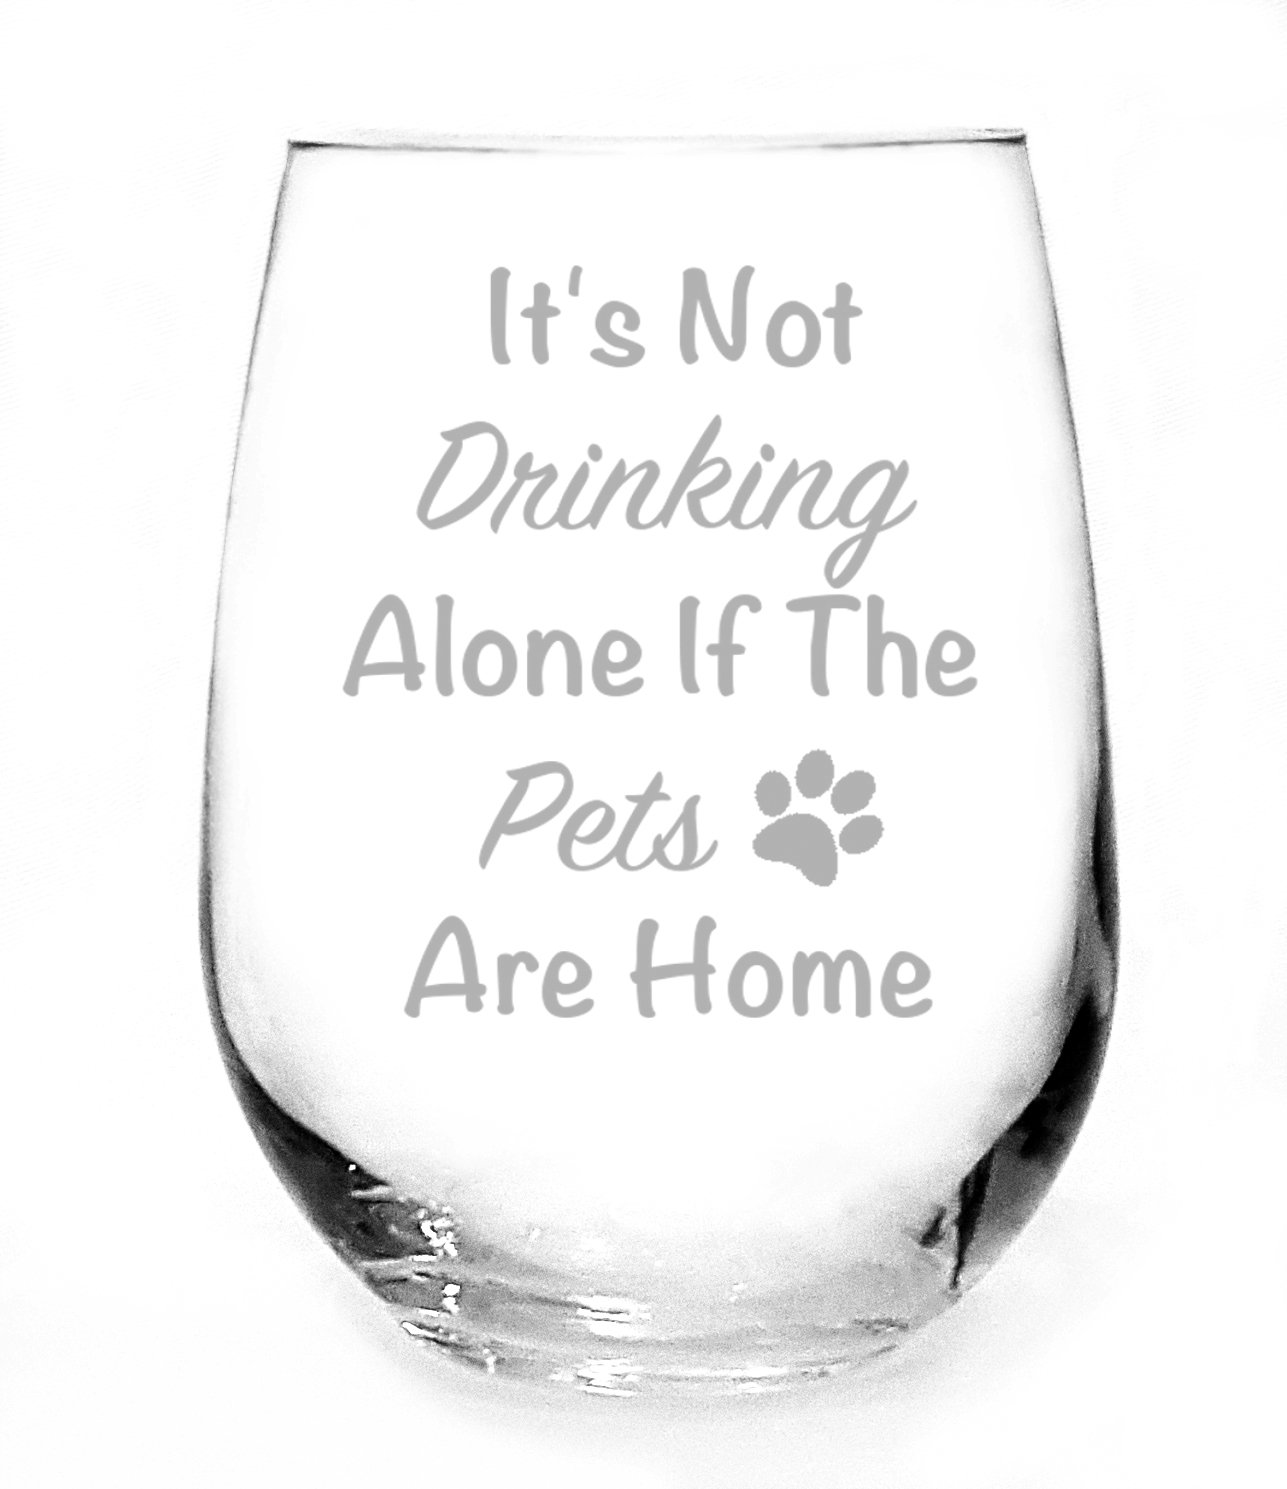 ''It's Not Drinking Alone if the Pets are Home'' Handmade Stemless Wine Glass 17oz